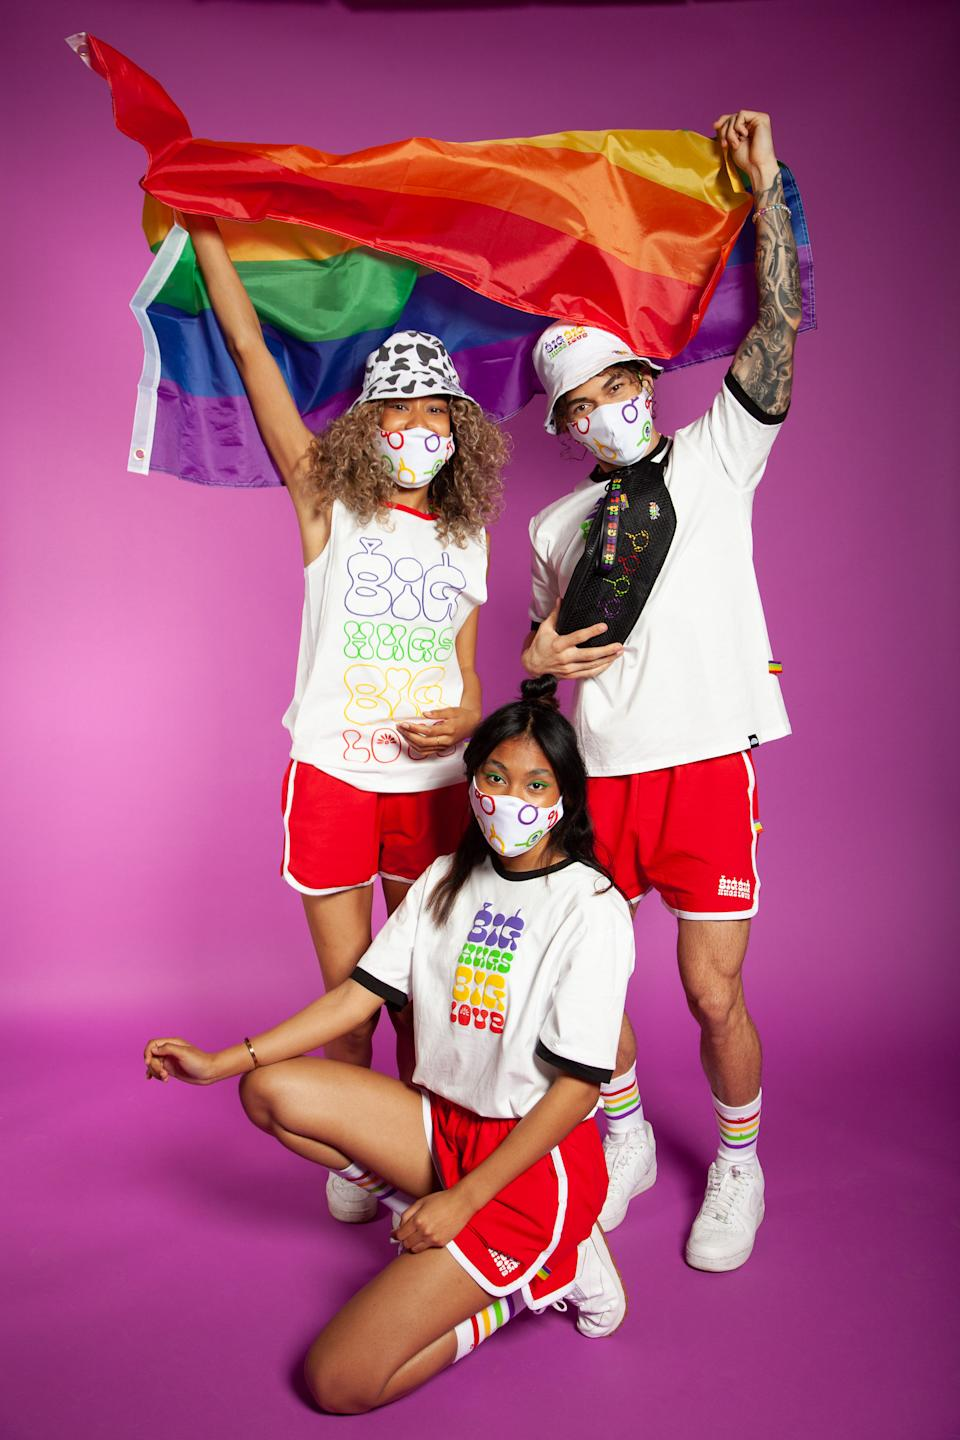 Models pile on some of the new Pride merch — rainbow tube socks, statement tees, red shorts, bucket hats and fanny packs. (Photo courtesy of Teletubbies Pride Collection)